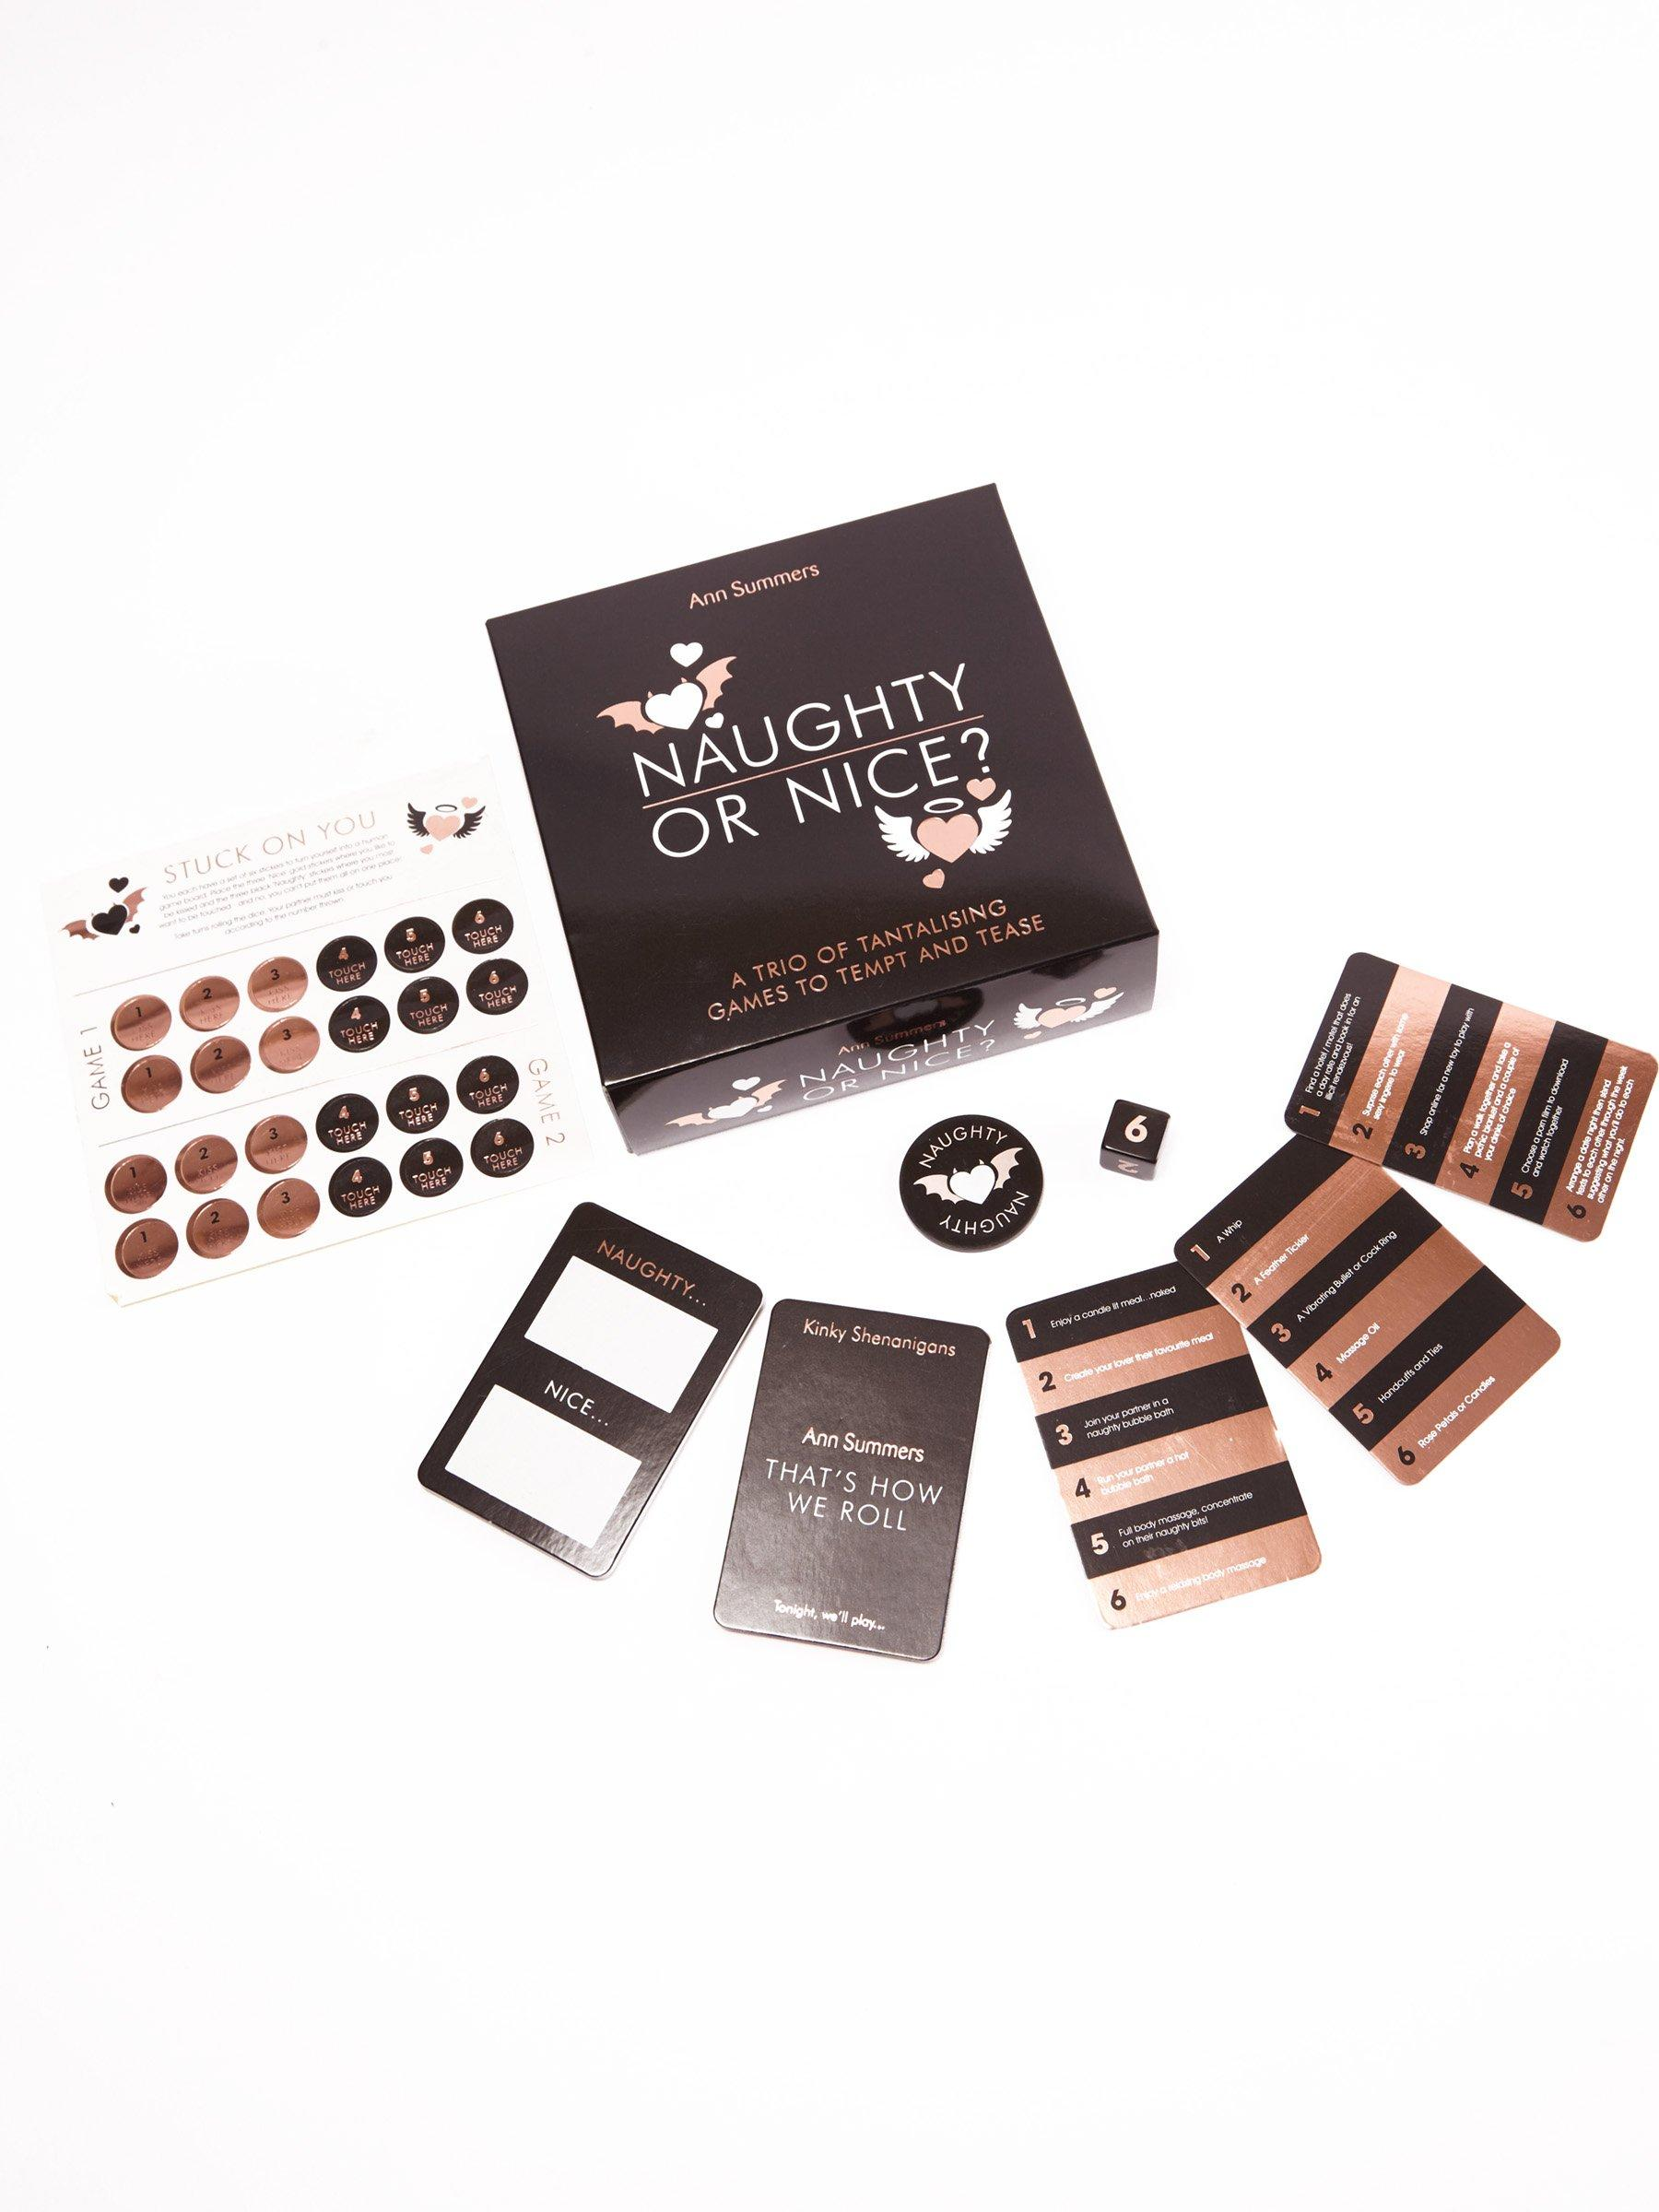 Ann Summers Naughty Or Nice Couples Game Sexy Gift Novelty Bedroom Accessory